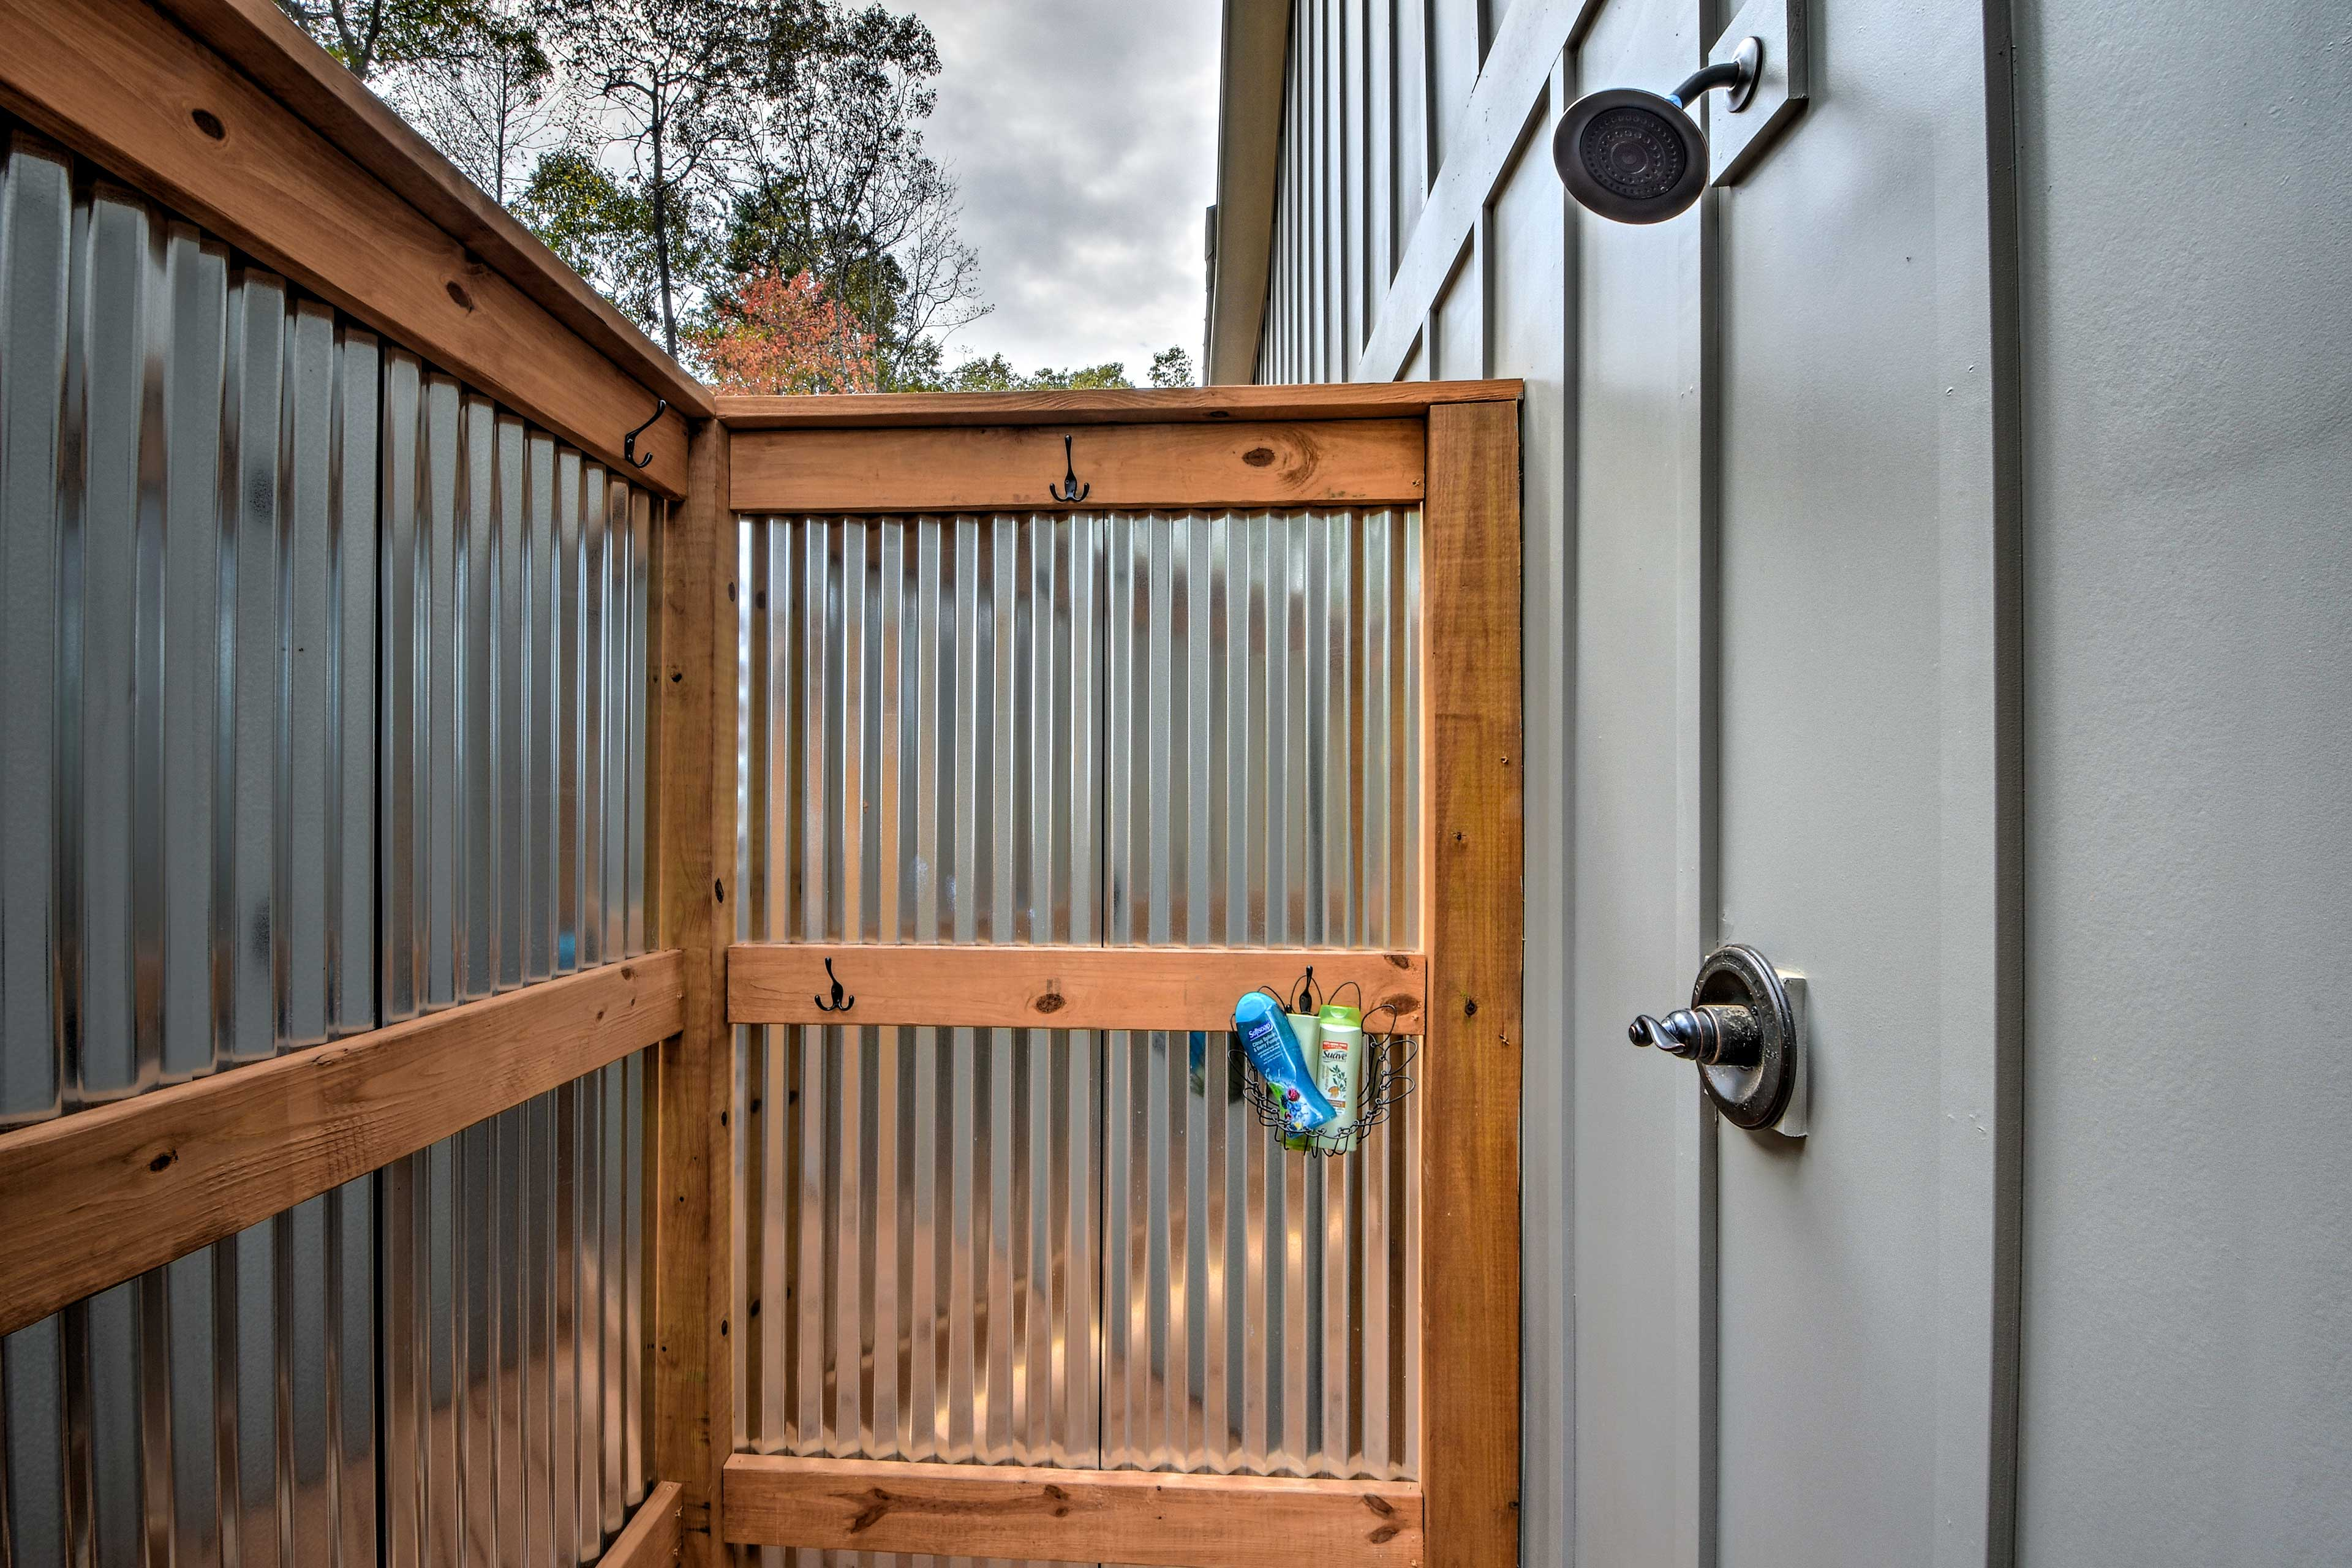 There's an outdoor shower for your convenience.